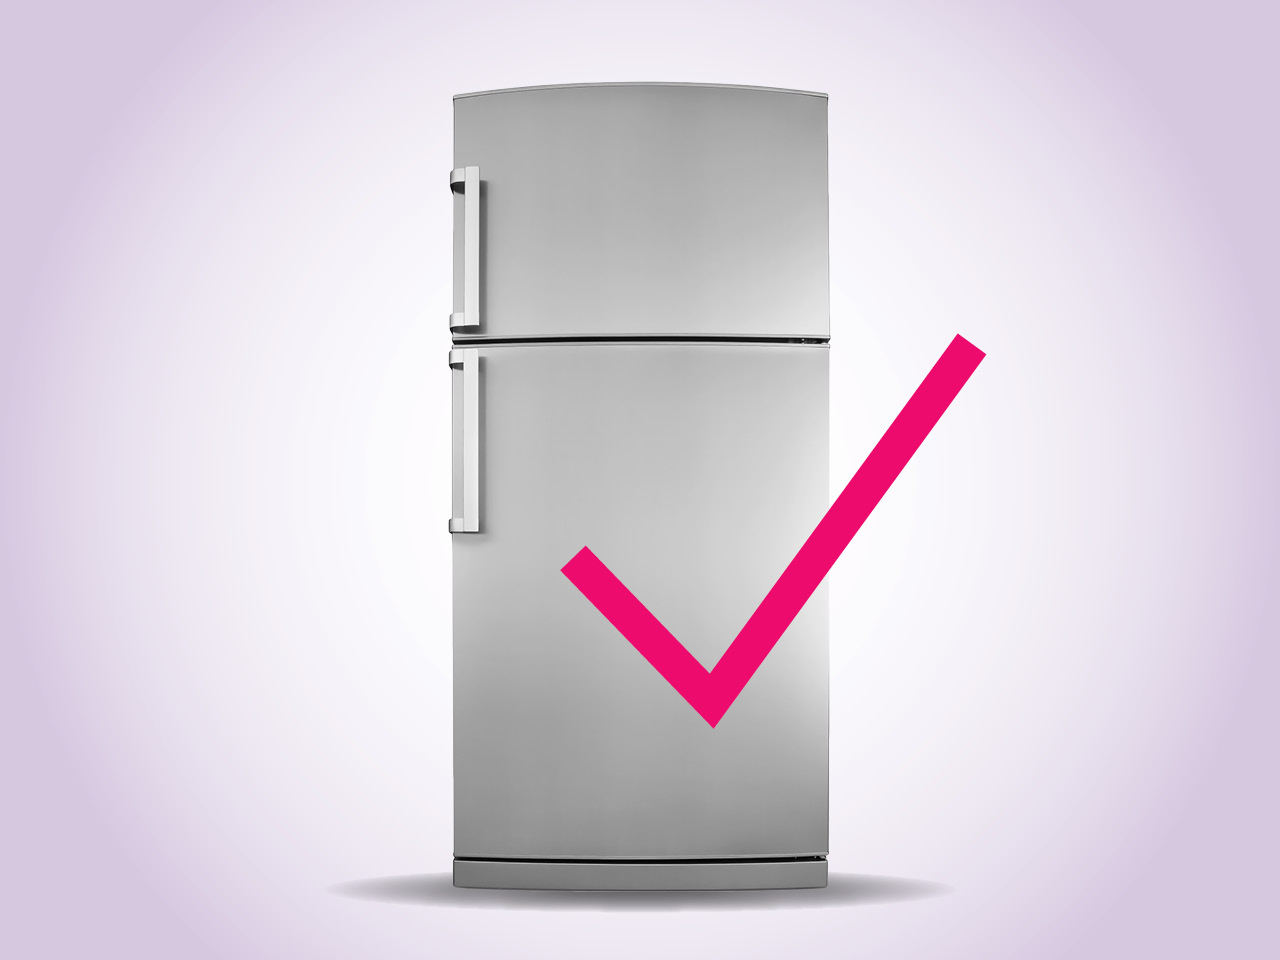 refrigerator on purple background with a pink checkmark in front of the door